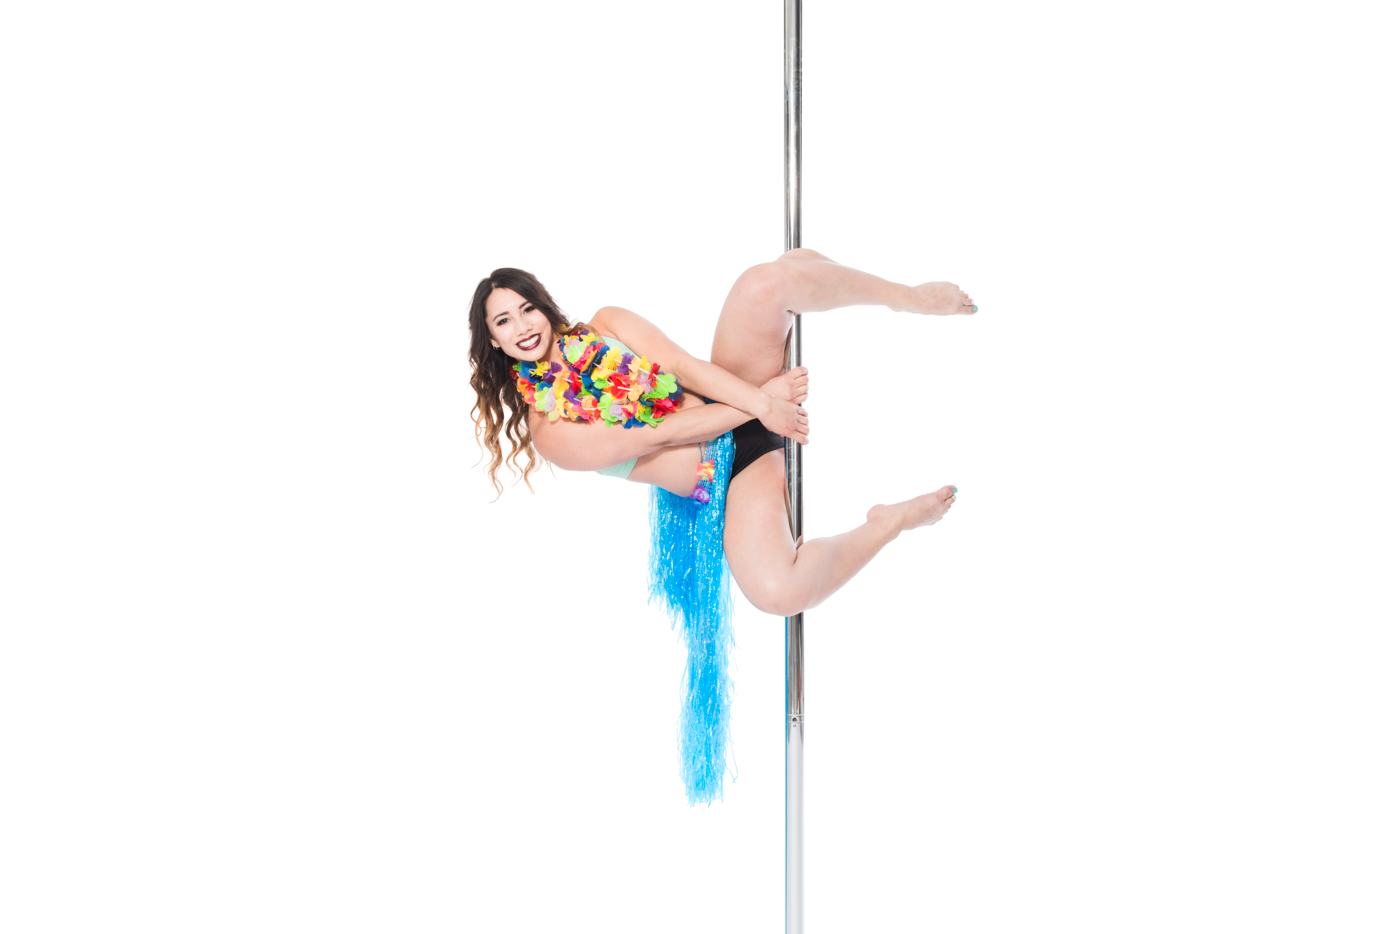 Aradia Fitness Calgary instructor Amanda Myers in a genie pose on pole